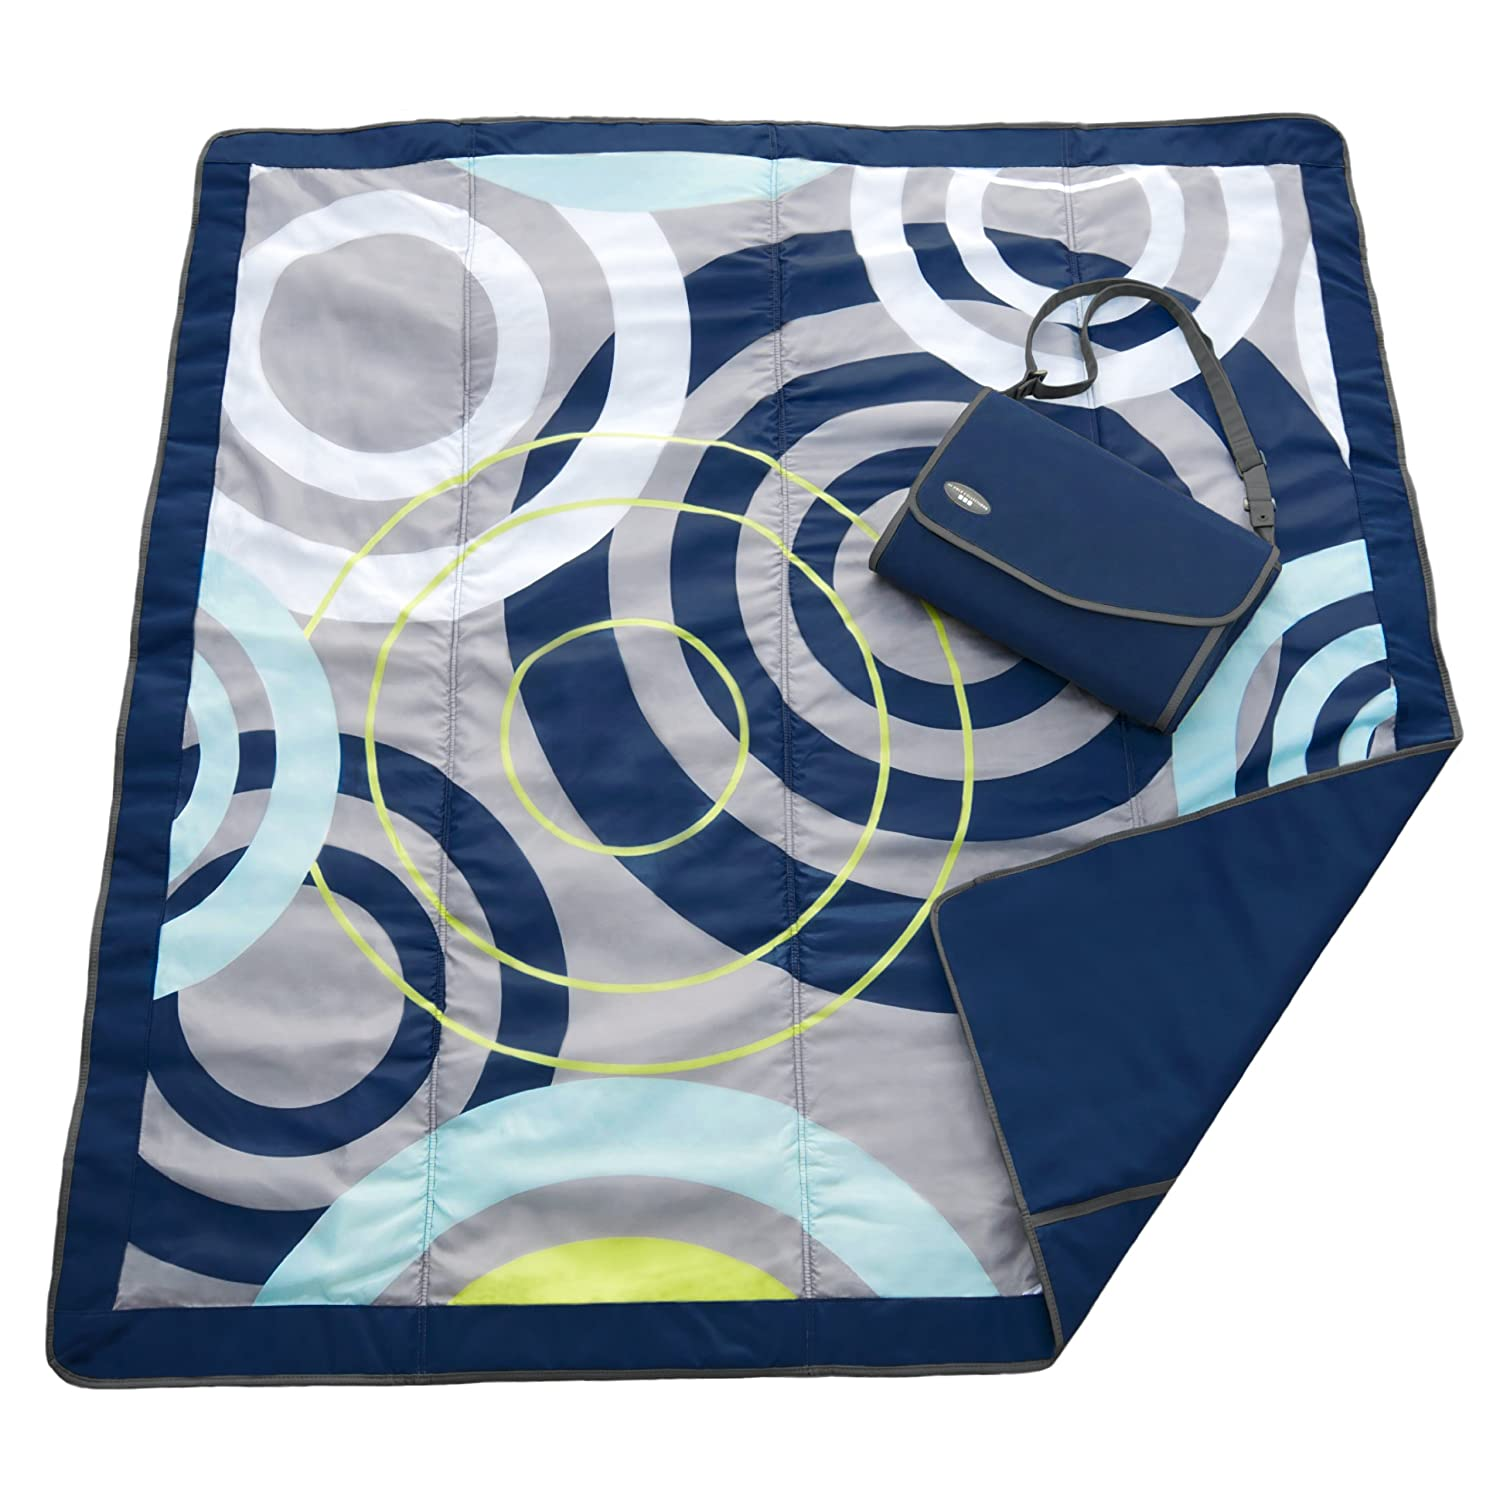 Jj Cole Outdoor Blanket, 7'X'5 Blue Orbit